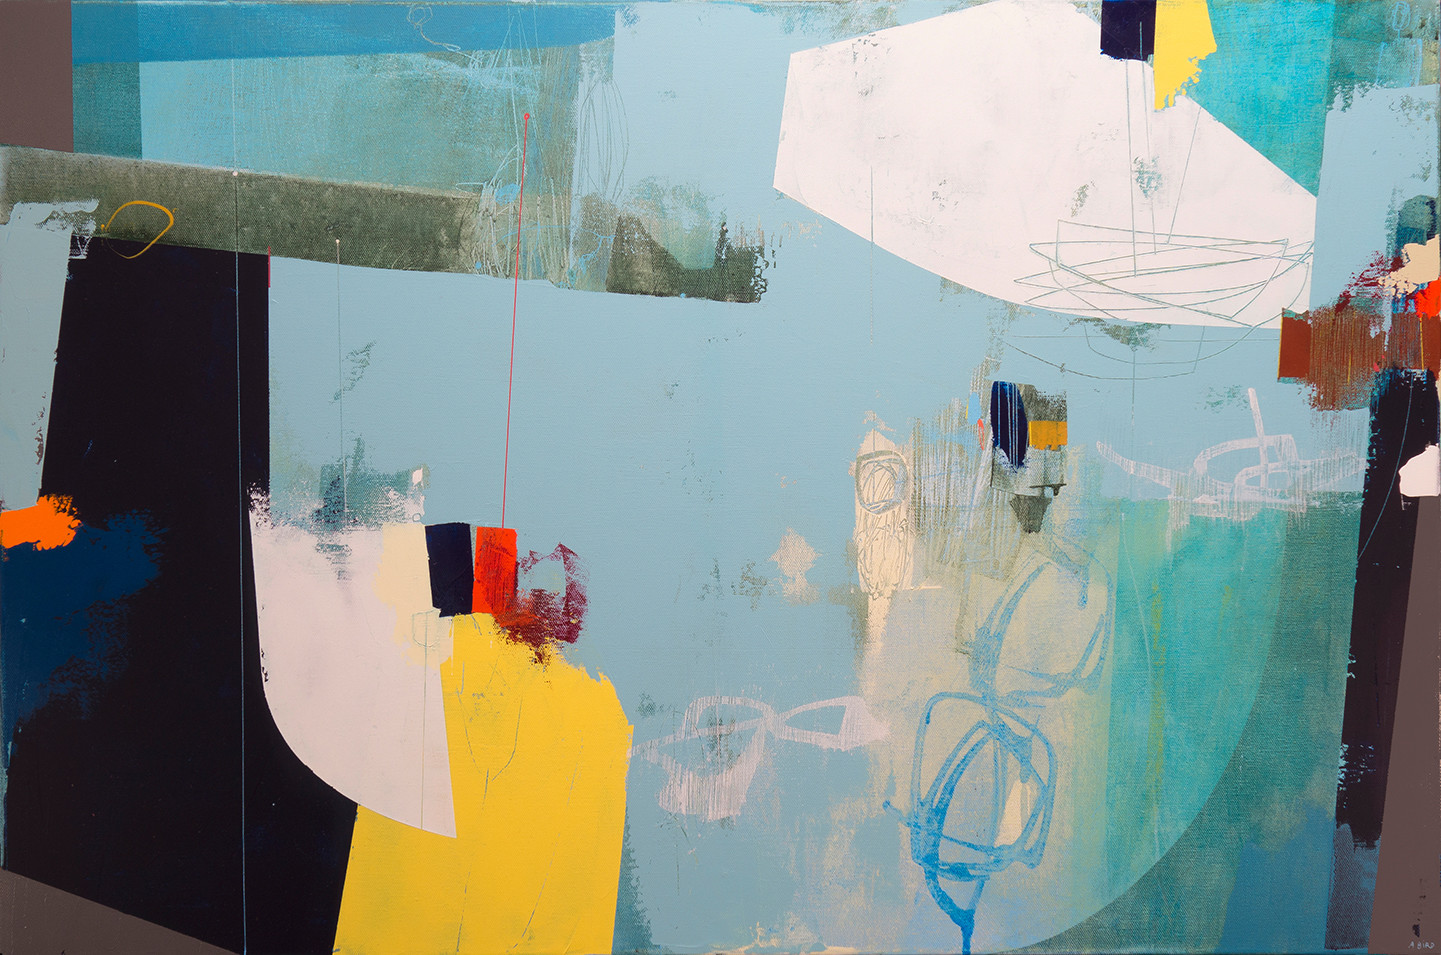 <span class=&#34;link fancybox-details-link&#34;><a href=&#34;/artists/77-andrew-bird/works/5270-andrew-bird-in-the-lee-2017-18/&#34;>View Detail Page</a></span><div class=&#34;artist&#34;><strong>Andrew Bird</strong></div> 1969 – <div class=&#34;title&#34;><em>In the Lee</em>, 2017/18</div> <div class=&#34;signed_and_dated&#34;>signed</div> <div class=&#34;medium&#34;>acrylic on canvas</div> <div class=&#34;dimensions&#34;>h 61 x w 91.5 cm<br /> 24 1/8 x 36 1/8 in</div><div class=&#34;price&#34;>£2,640.00</div><div class=&#34;copyright_line&#34;>OwnArt: £ 250 x 10 Months, 0% APR + deposit £ 140</div>